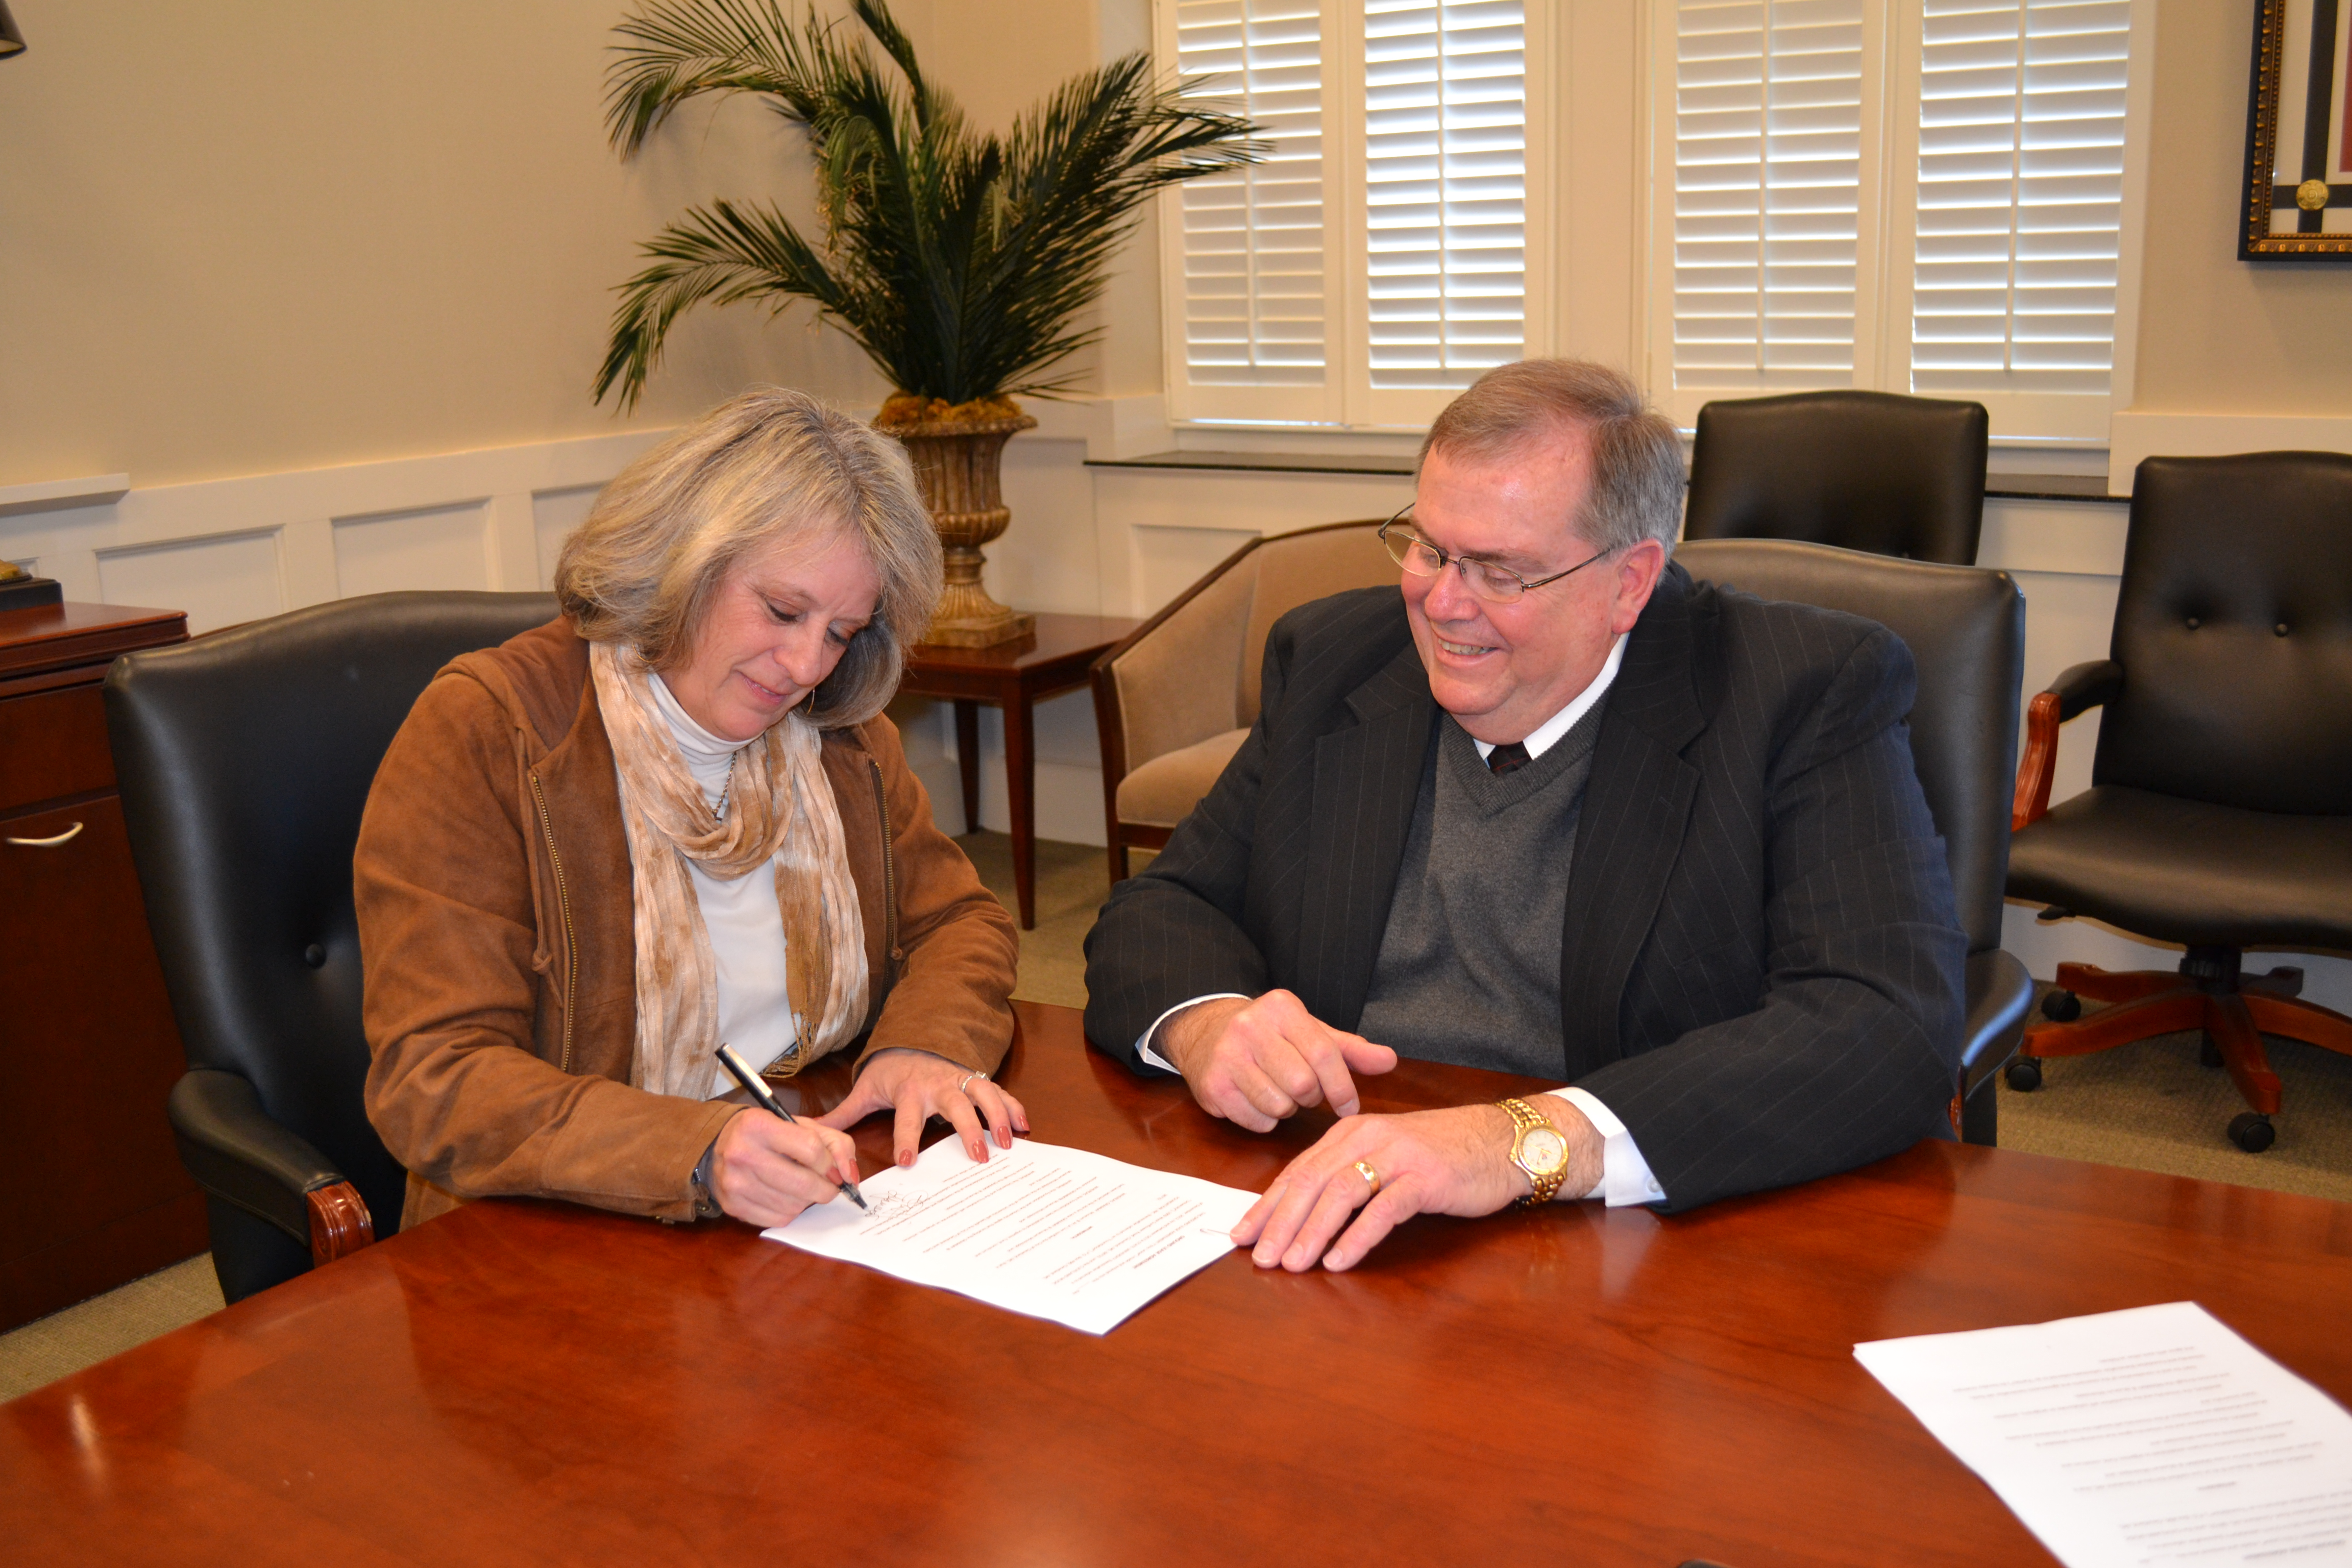 PHOTO:  From left, President of the Cleveland Music Foundation Lucy Janoush and Delta State University President Dr. John M. Hilpert sign the lease agreement for the establishment of GRAMMY® Museum Mississippi to be located on the Delta State University campus in Cleveland.